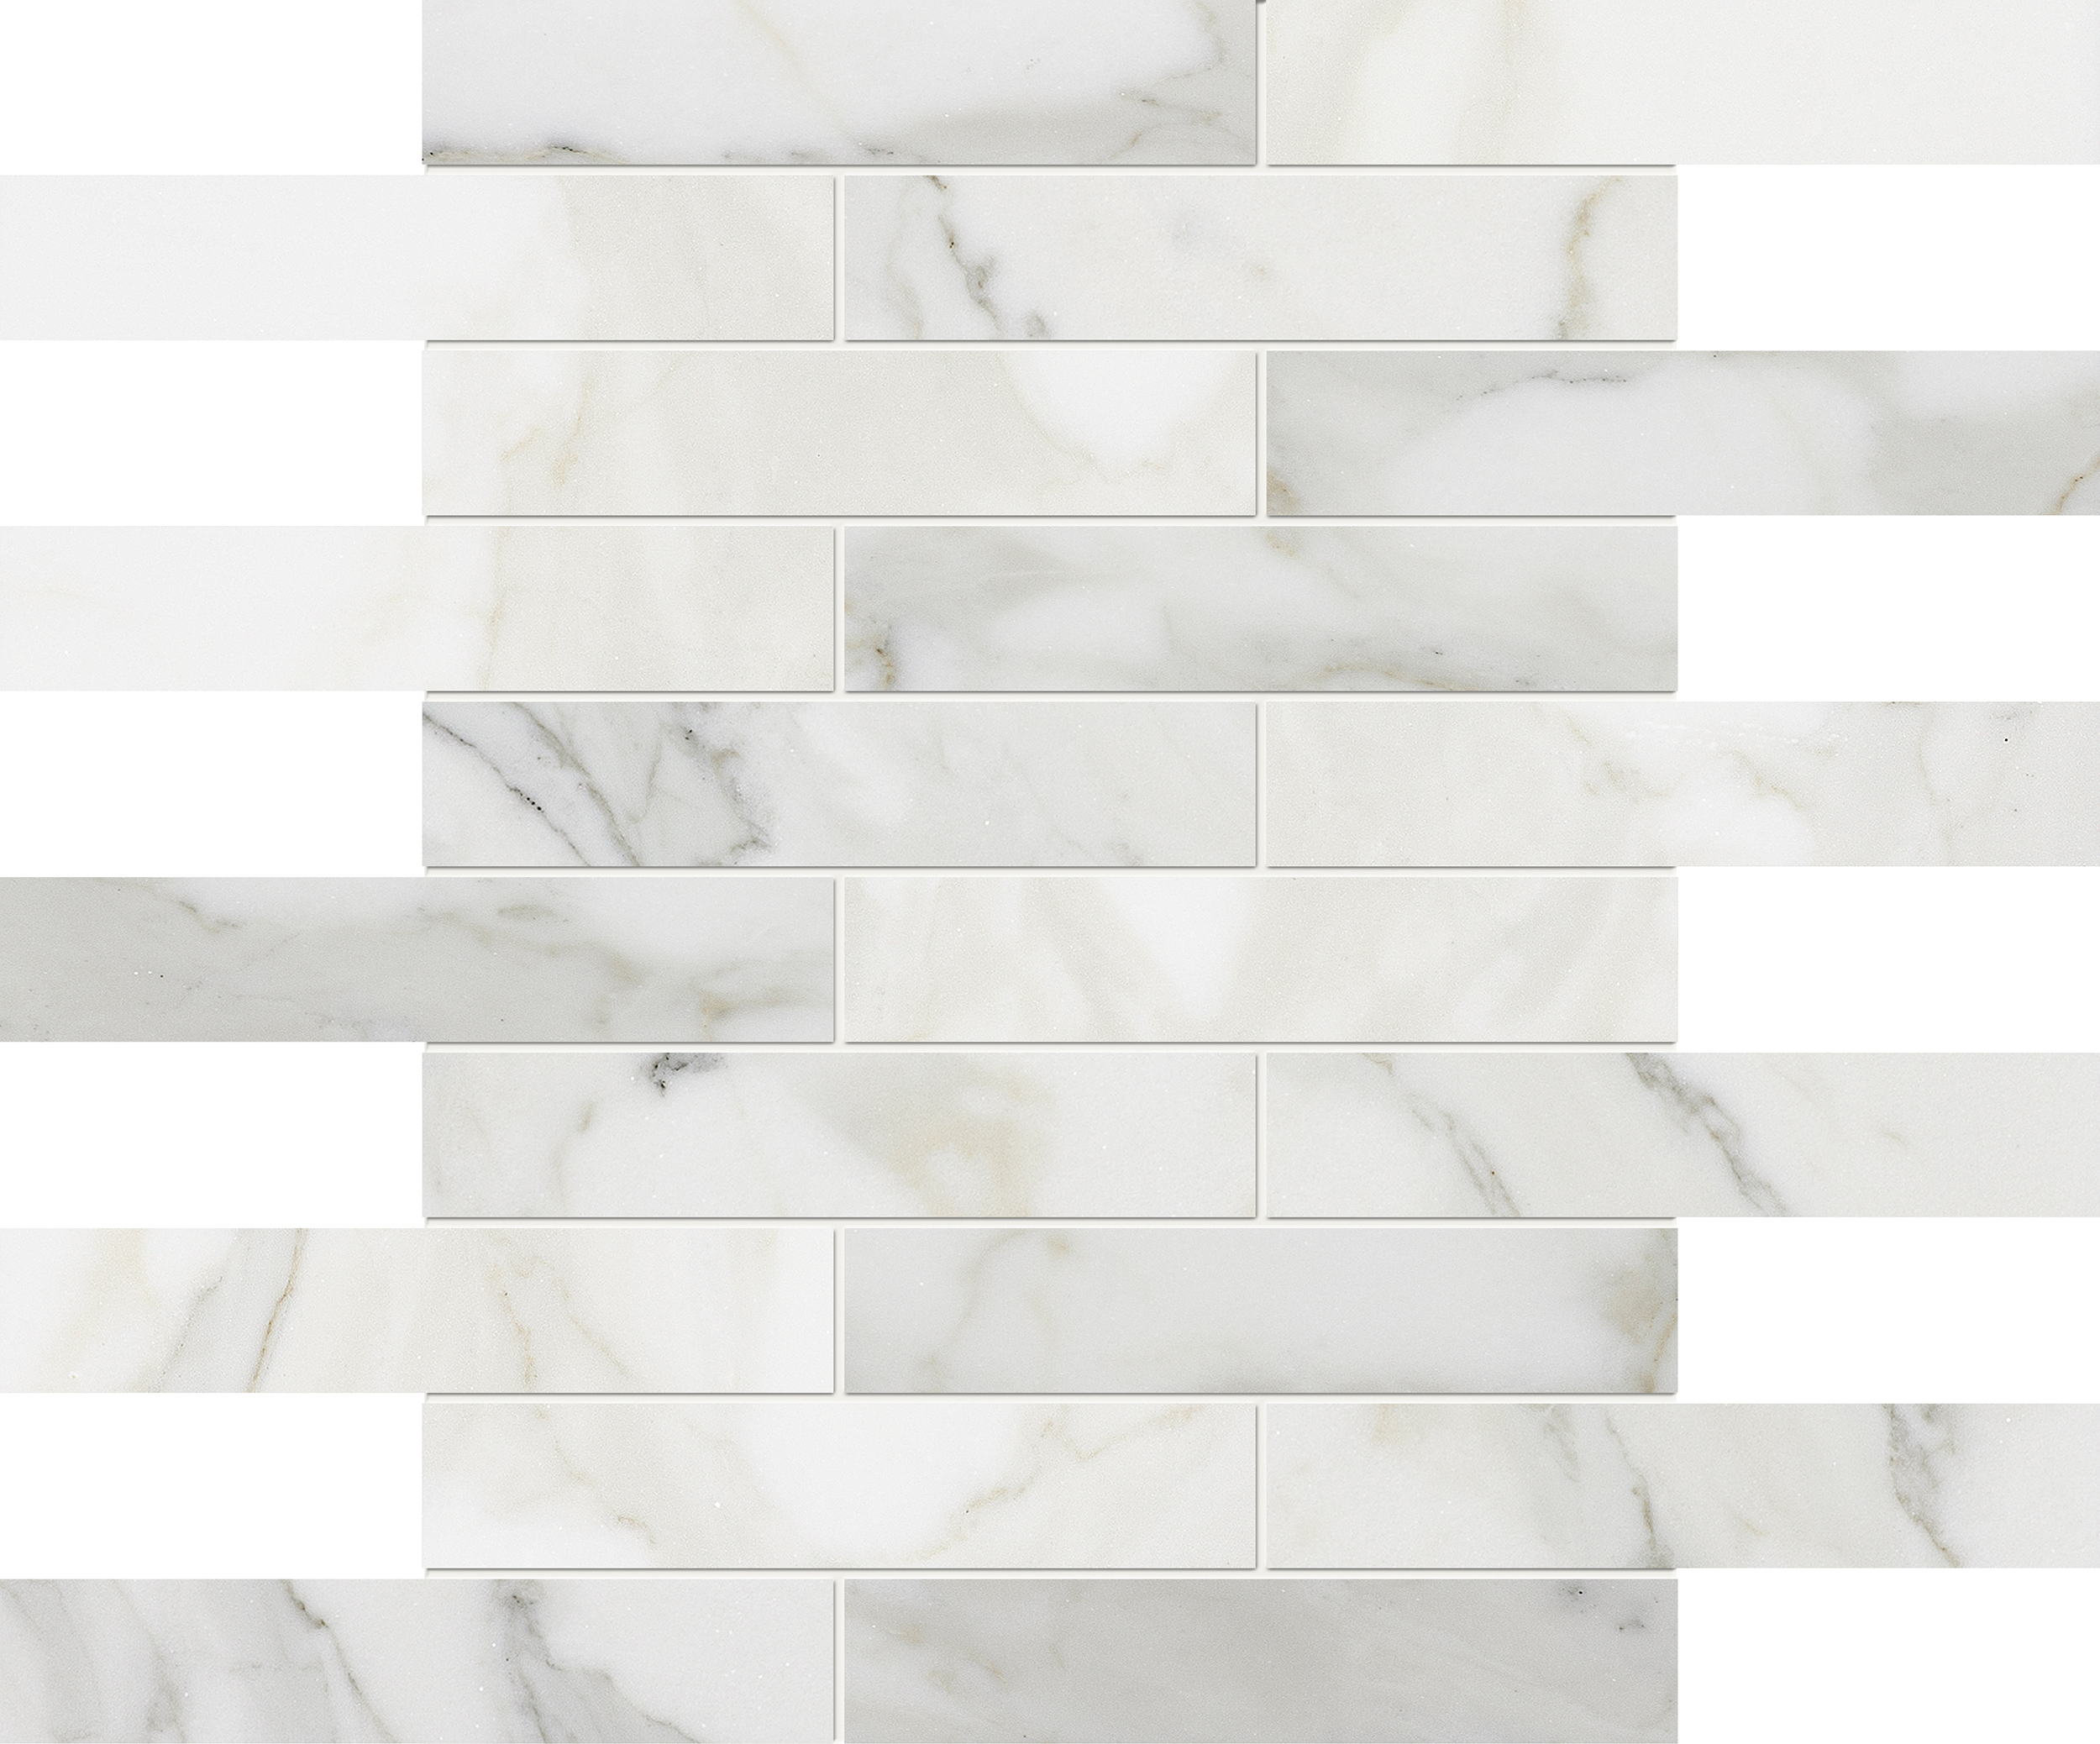 """MS90075 calacatta gold modern polished staggered mosaic 1 1/4""""x6"""" 12""""x12""""x3/8"""" sheets"""